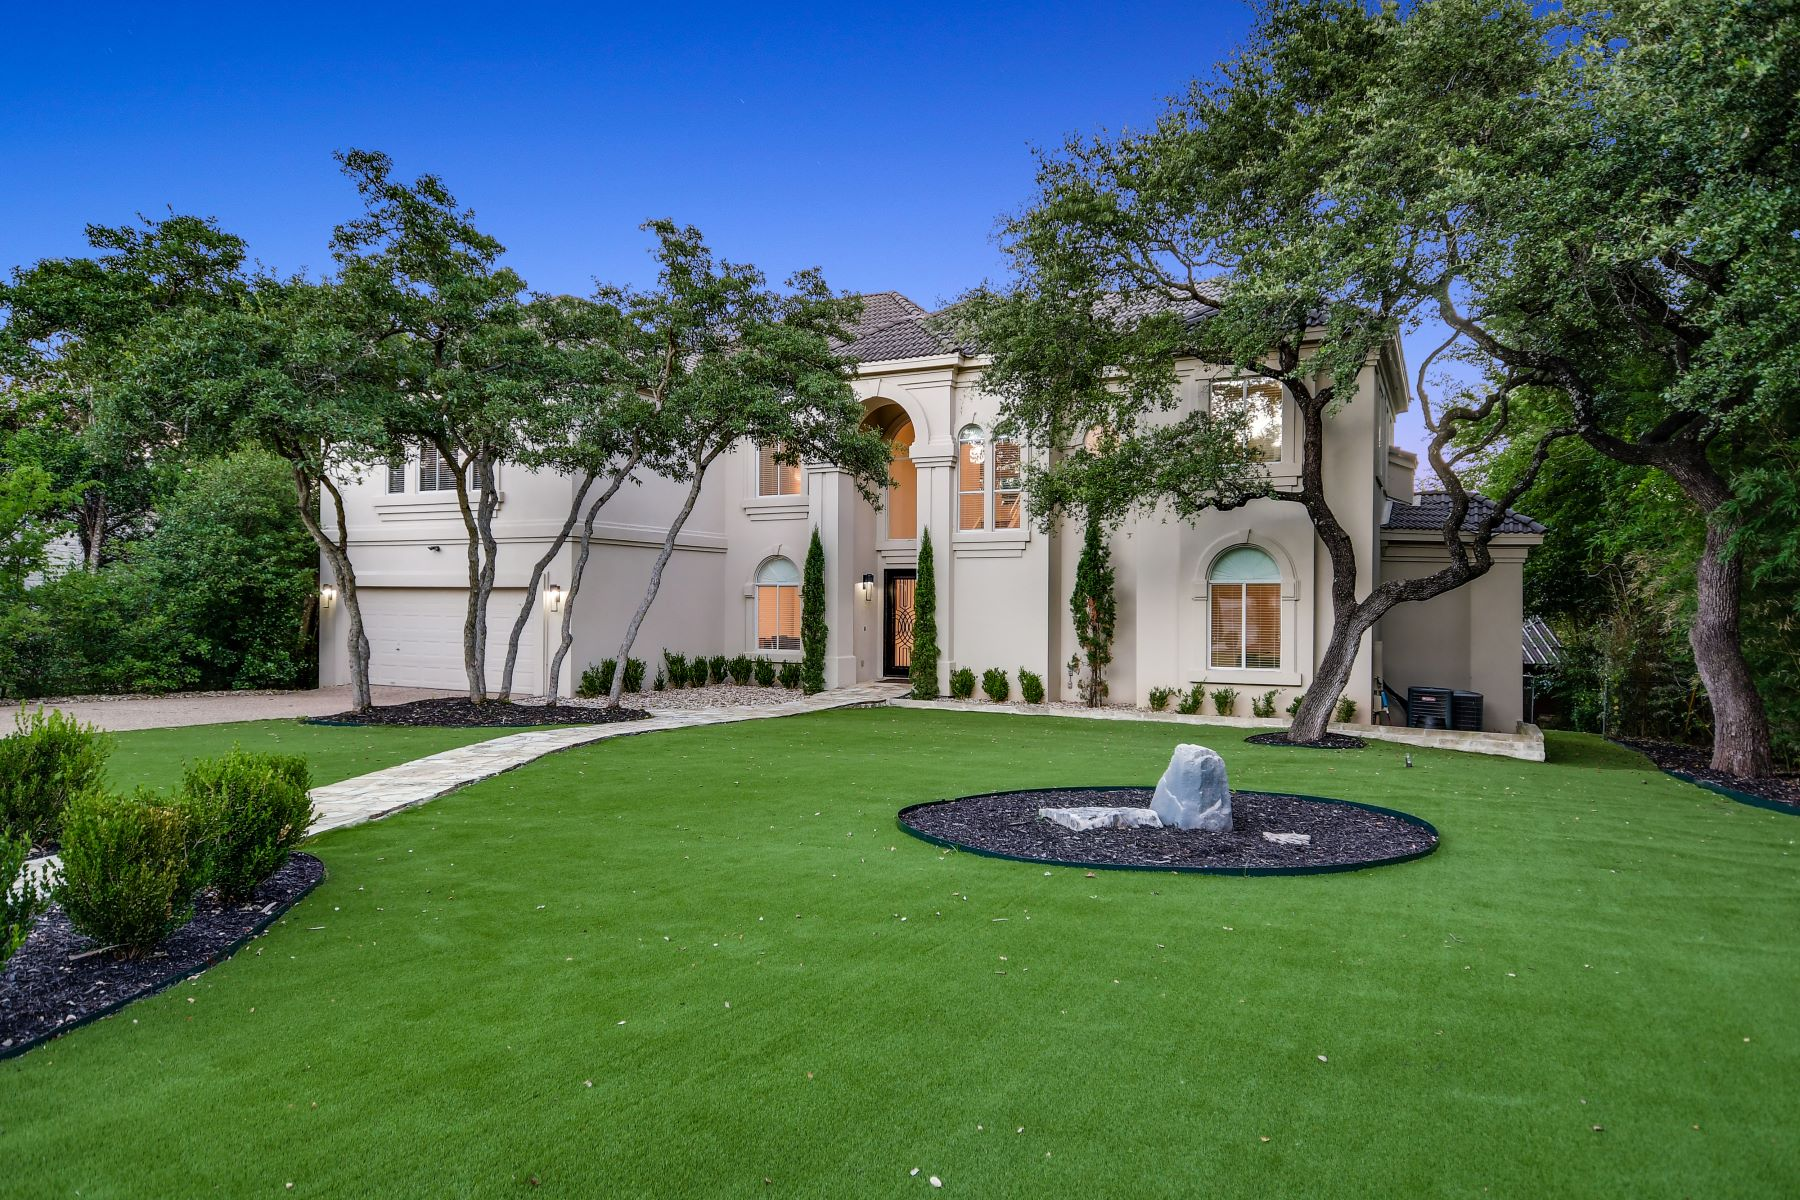 Single Family Homes for Sale at Sophisticated Lake Travis Estate 15747 Booth Circle Leander, Texas 78641 United States